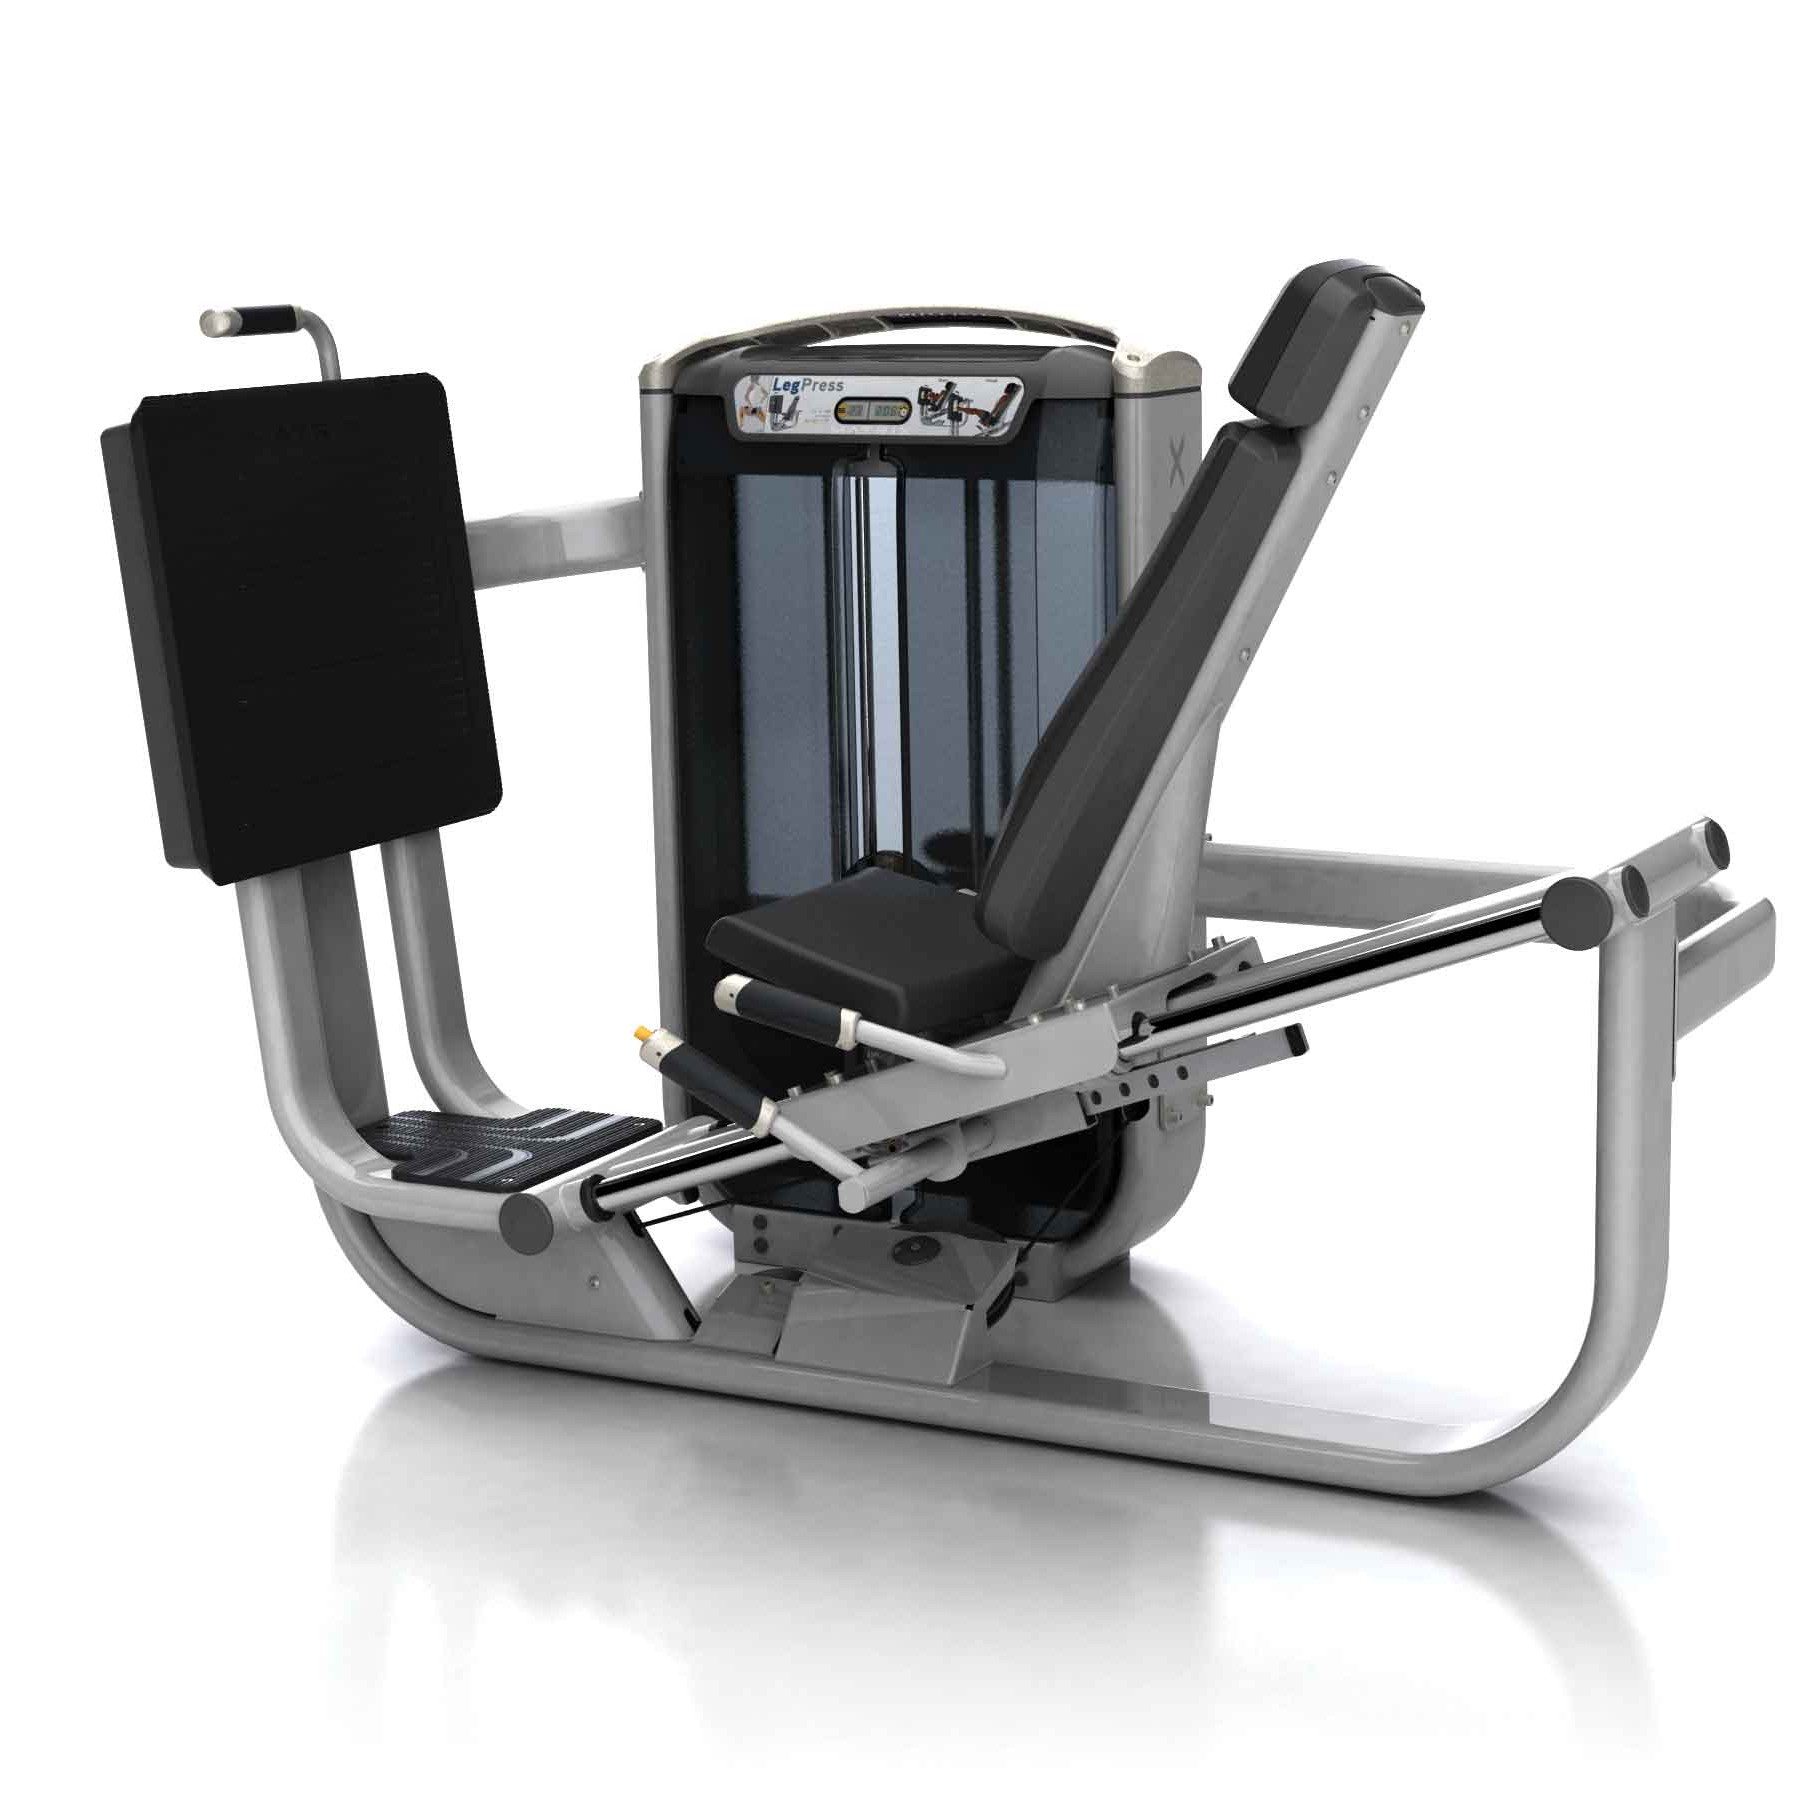 MX17_ULTRA G7-S70 leg press_Iced Slvr_hero_lores